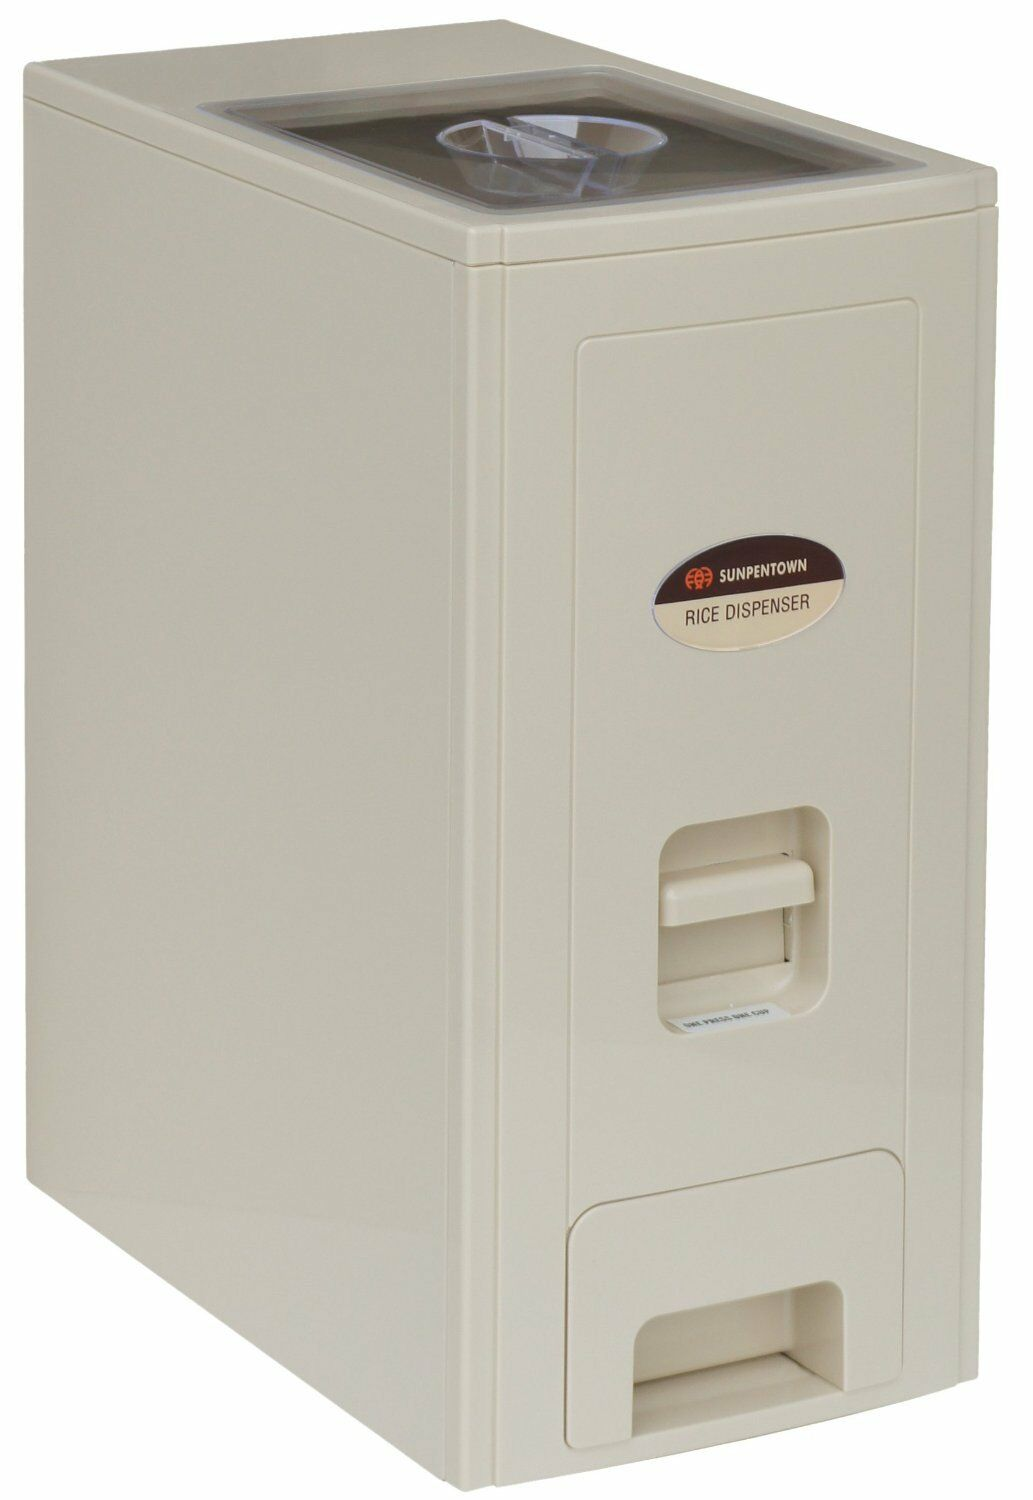 Sunpentown 26-Pound Rice Dispenser SPT SC-12 New